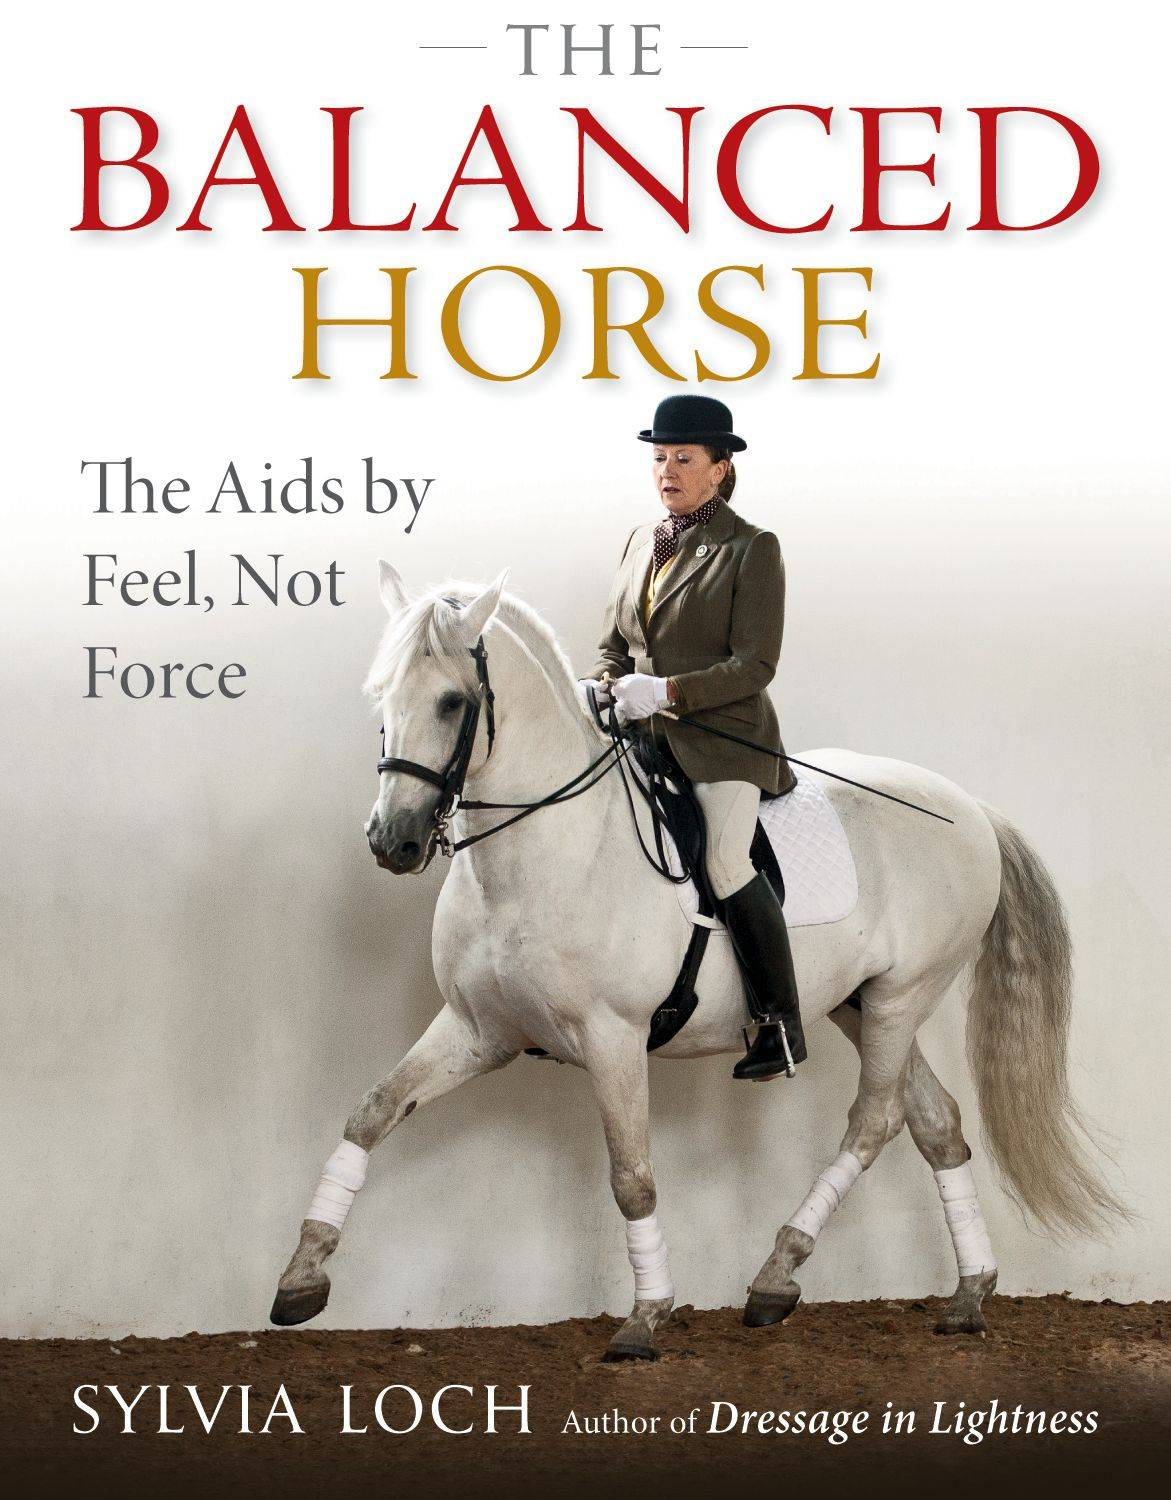 The Balanced Horse by Sylvia Loch